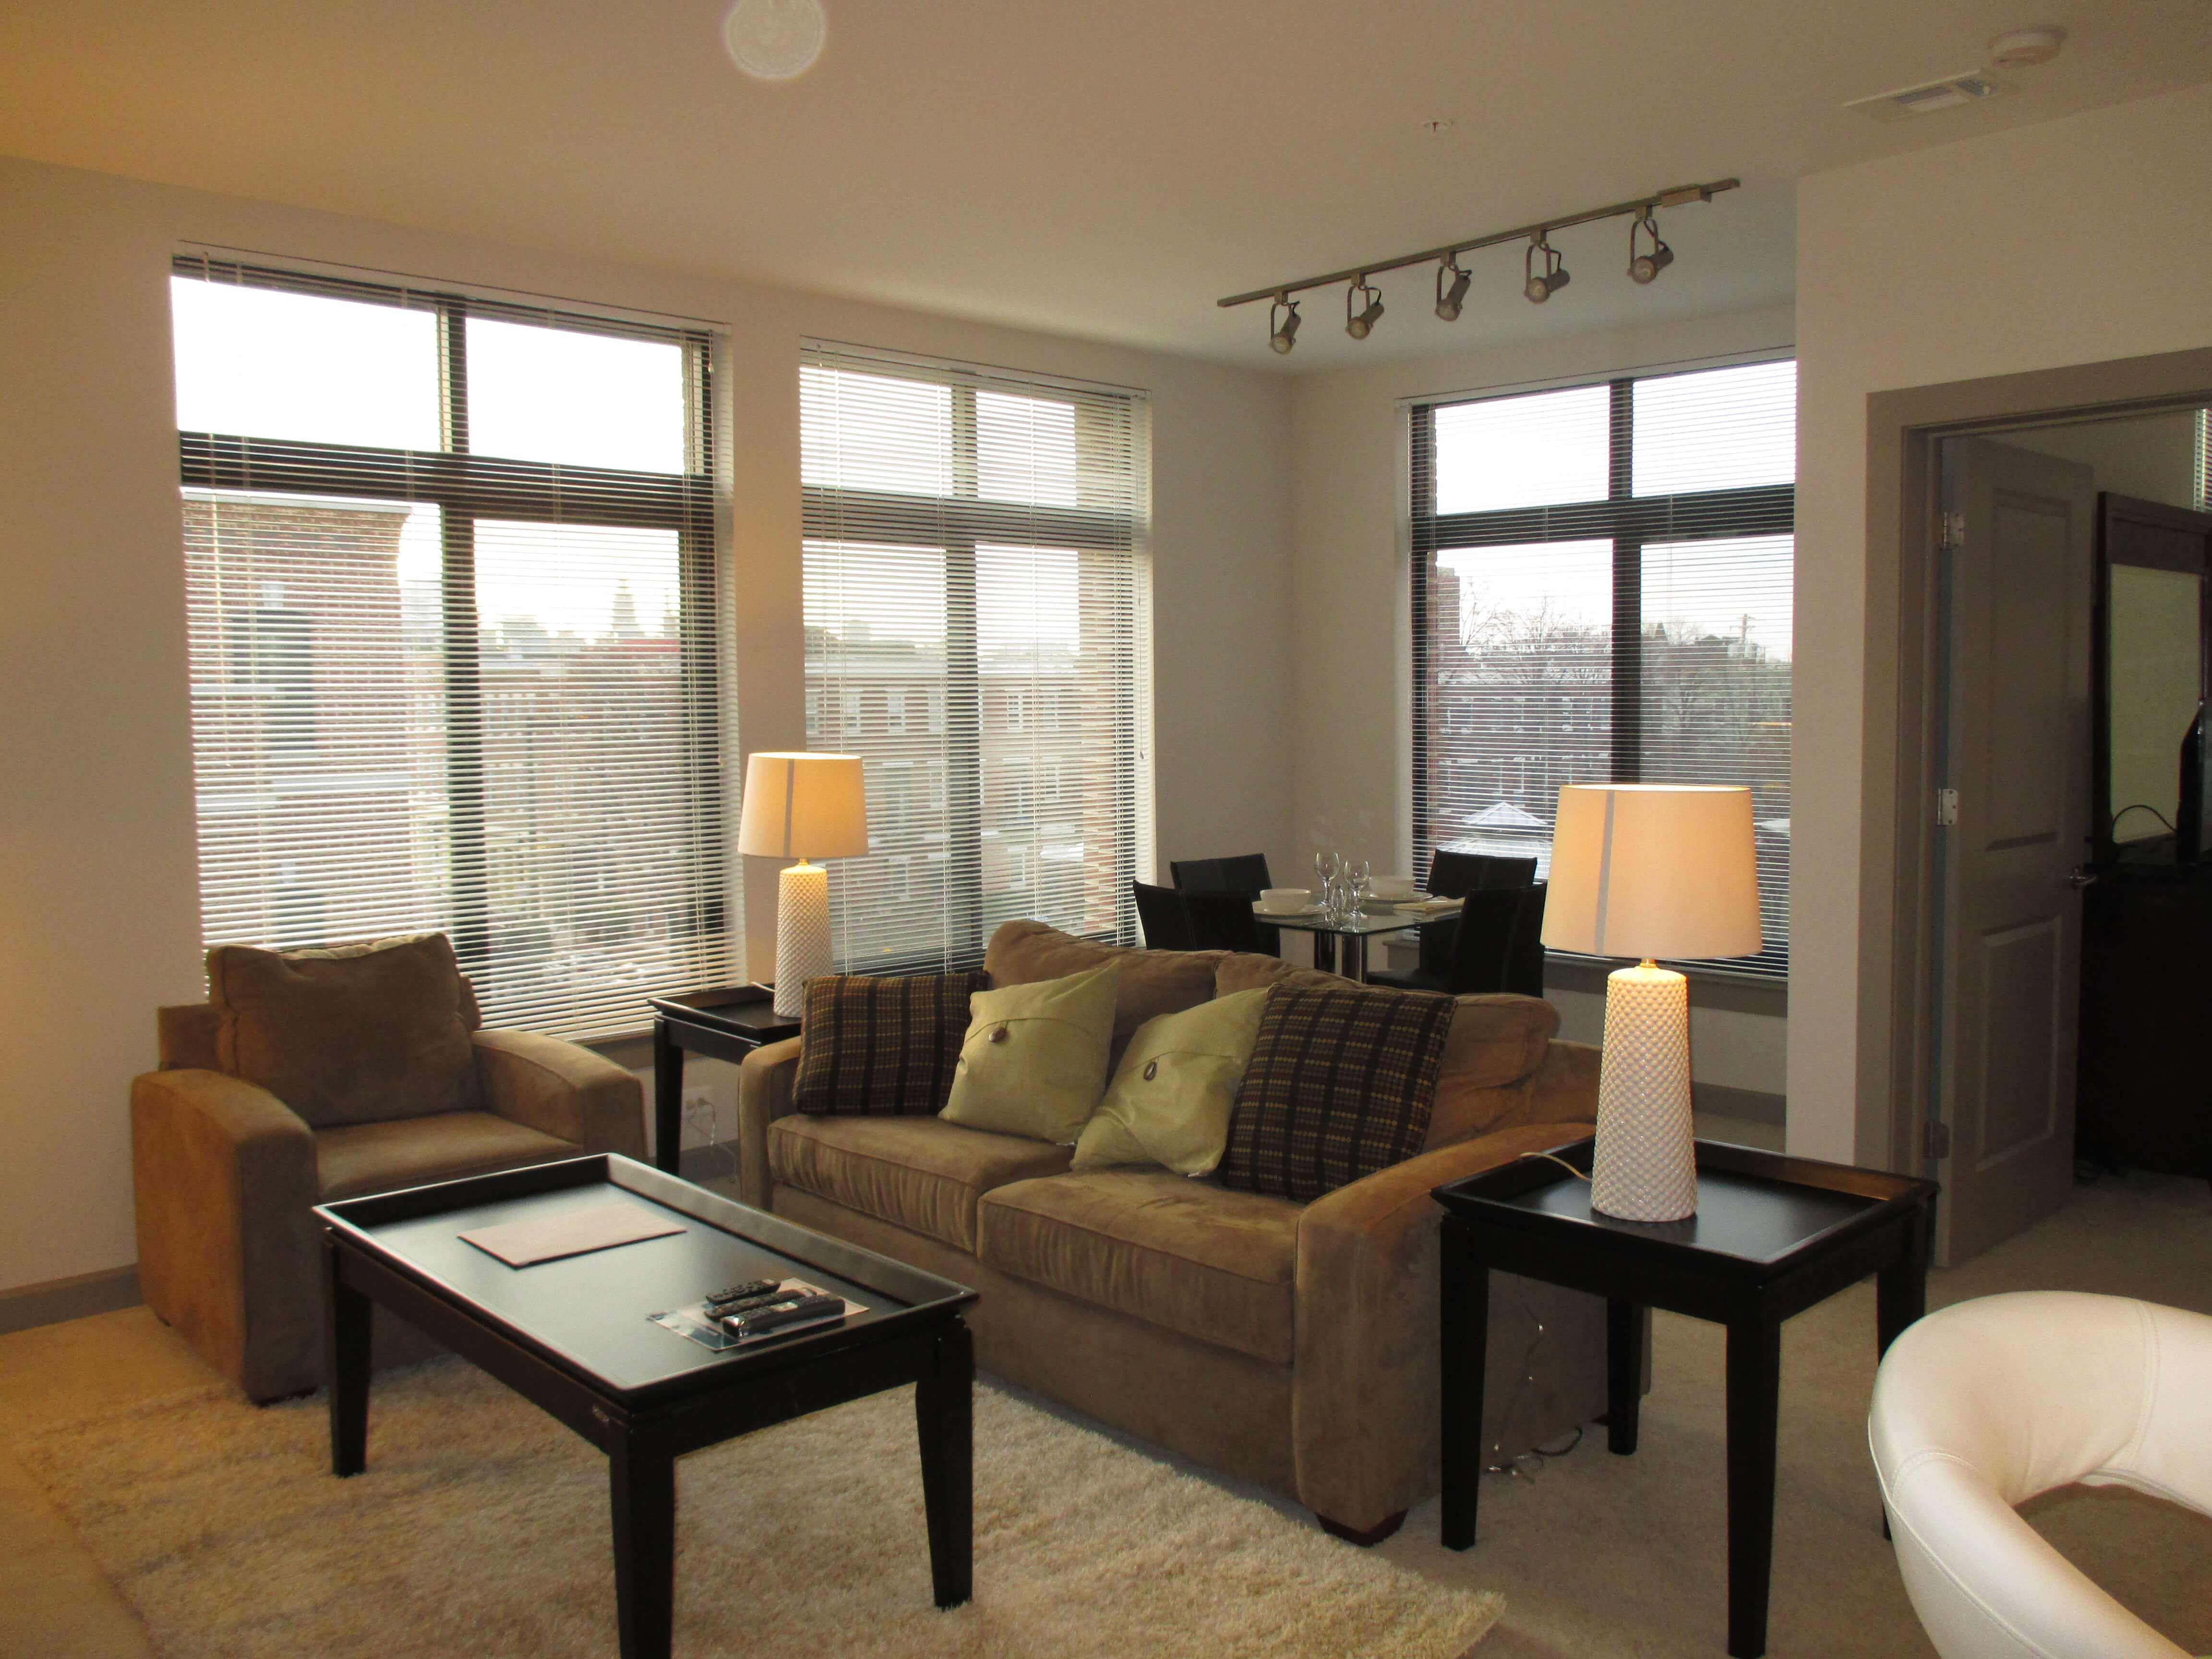 Baltimore South Furnished 2 Bedroom Apartment For Rent 5280 Per Month Rental Id 2870121